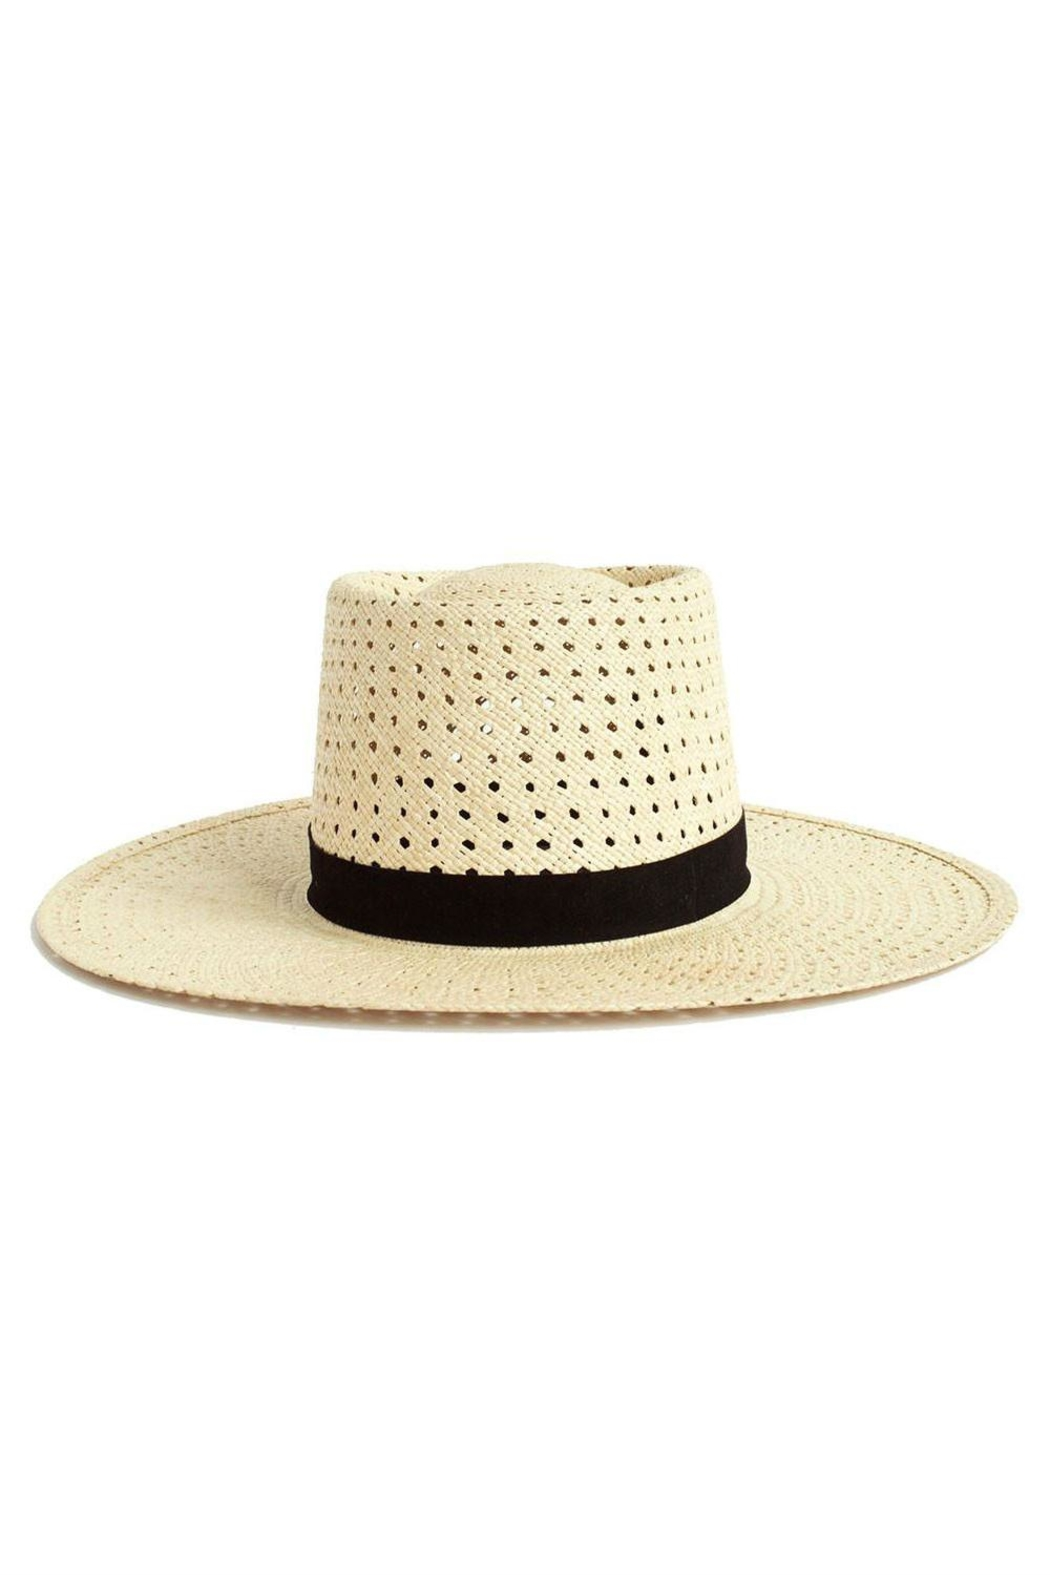 Janessa Leone Maxime Straw Hat - Front Full Image